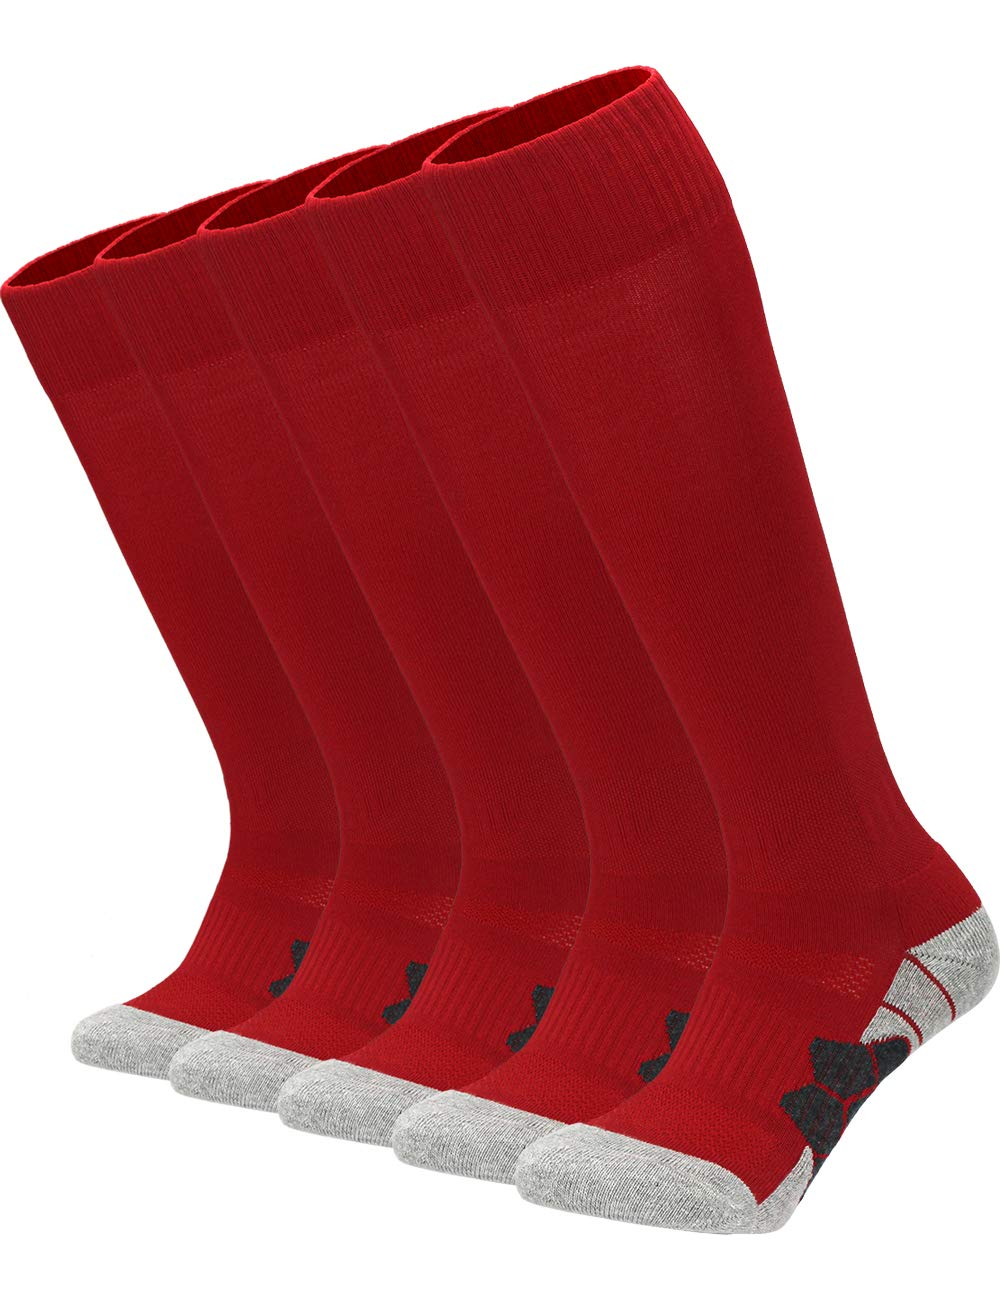 Youth Kids Adult Knee High Cotton Basketball Socks Boys Girls Parent-Child Outdoor Active Long Towel Bottom Socks, 5-Pair Red, Size M (Kids 7C-10C / Youth 5Y-7Y / W 6-10 / M 6-8) by APTESOL